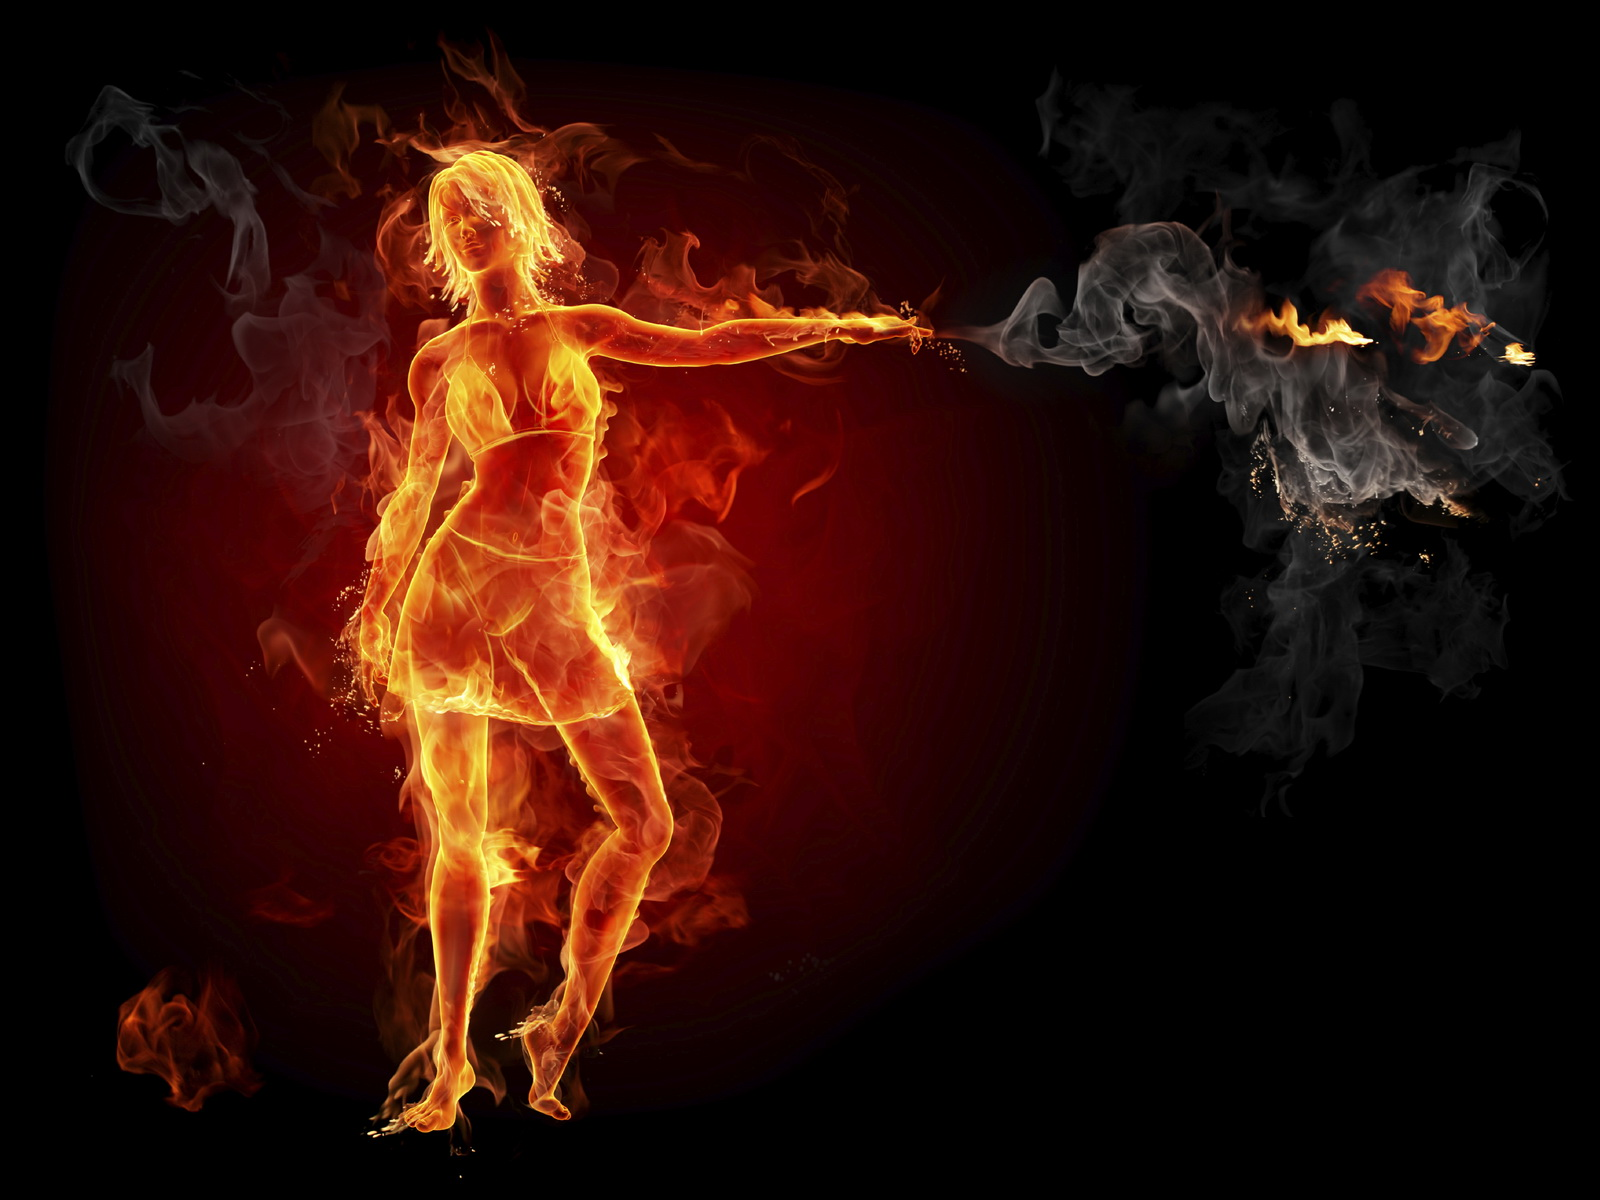 Fire Girl Wallpapers Free Screensaver